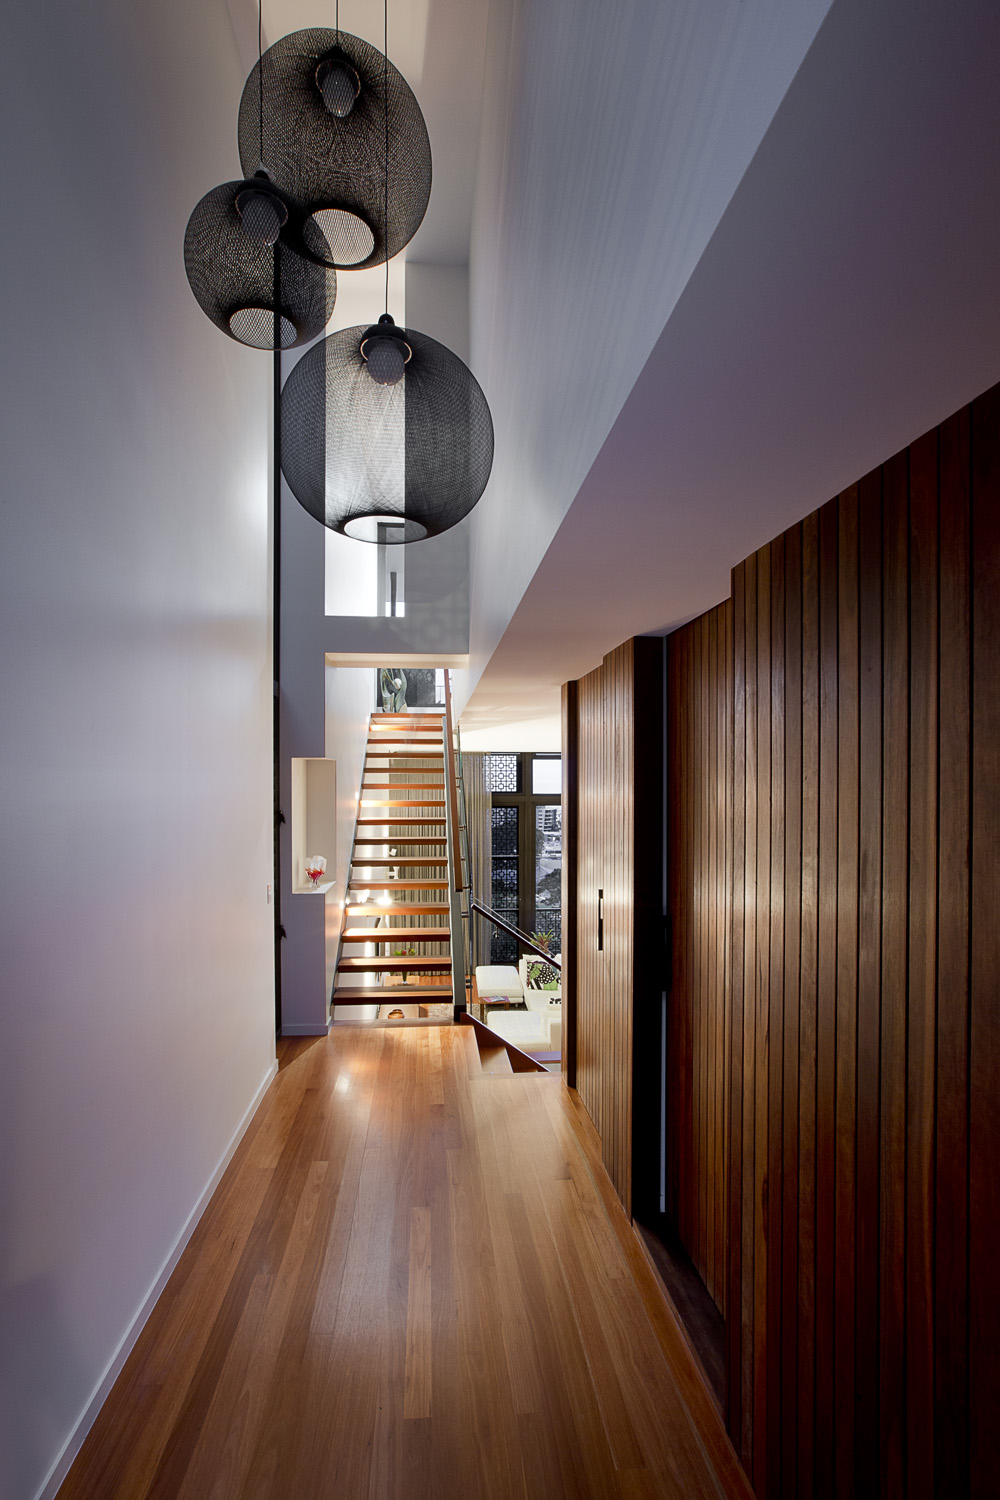 Queensland home: A little ray of sunshine